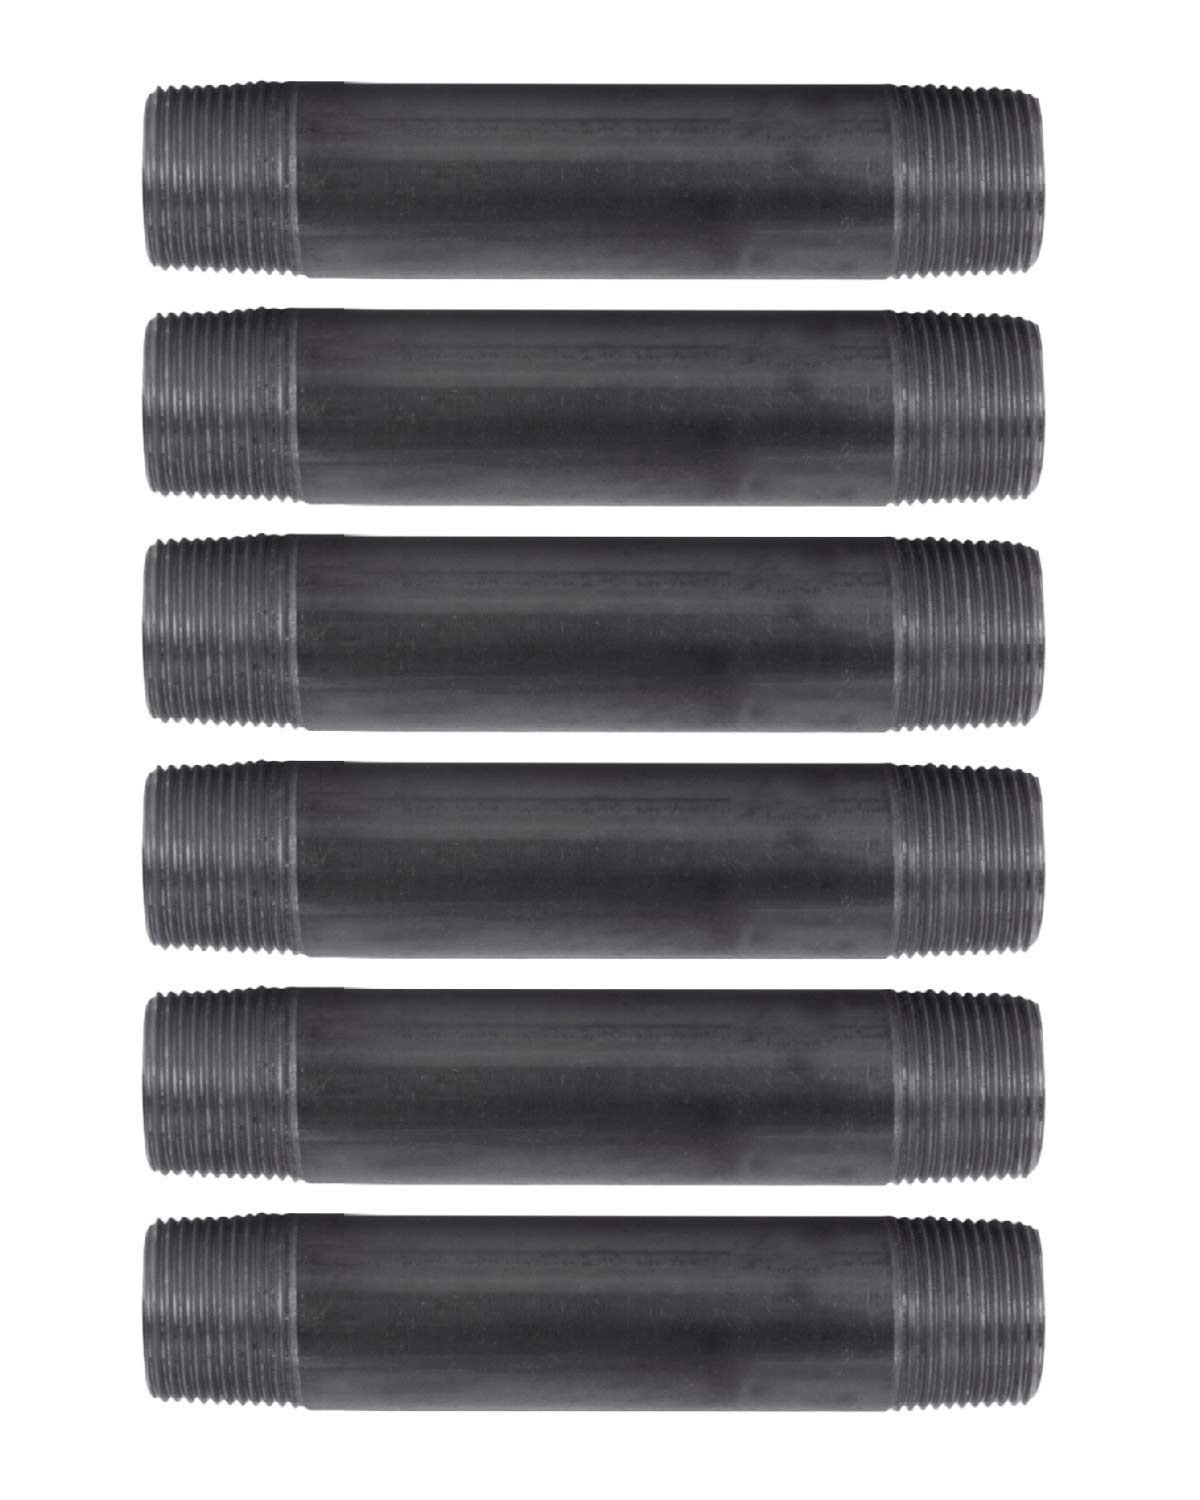 "Pipe Decor 1"" x 6"" Malleable Cast Iron Pipe, Pre Cut Connector, Industrial Steel Grey Fits Standard One Inch Black Threaded Pipes Nipples and Fittings, Build Vintage DIY Furniture, Six Inches, 6 Pack"